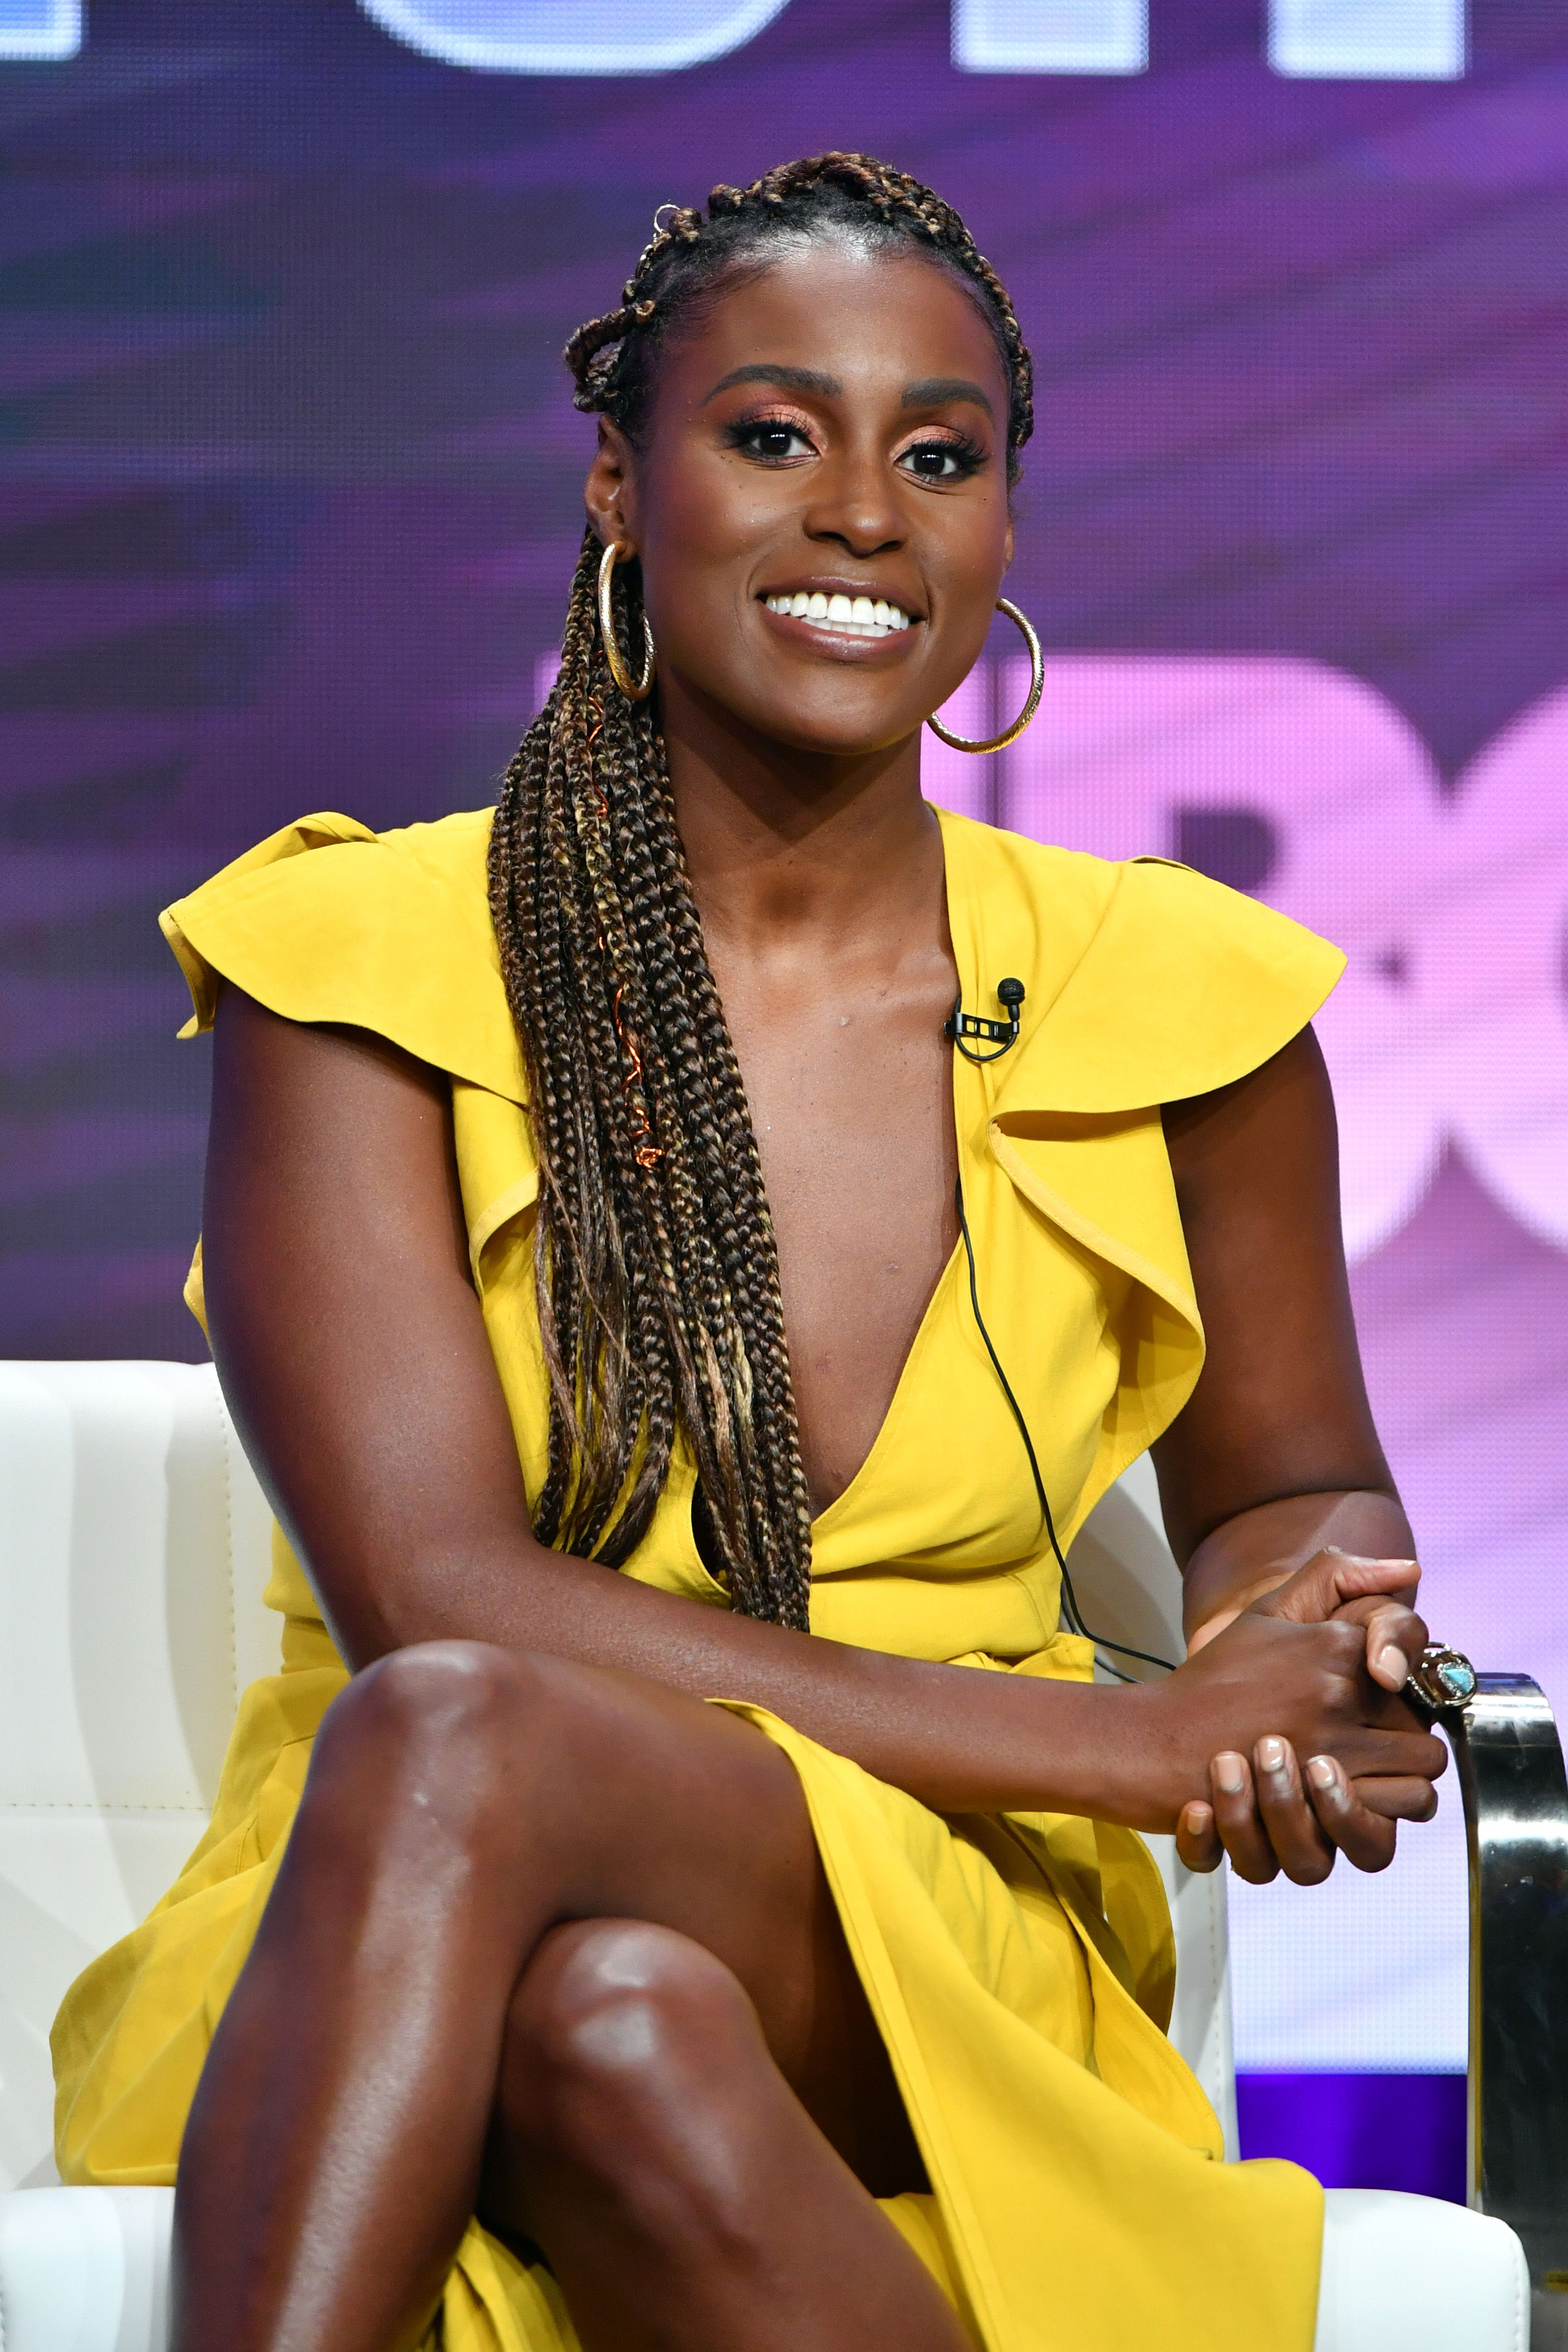 Issa Rae at HBO segment of the Summer 2019 Television Critics Association Press Tour on July 24, 2019 in Beverly Hills.  |  Photo: Getty Images